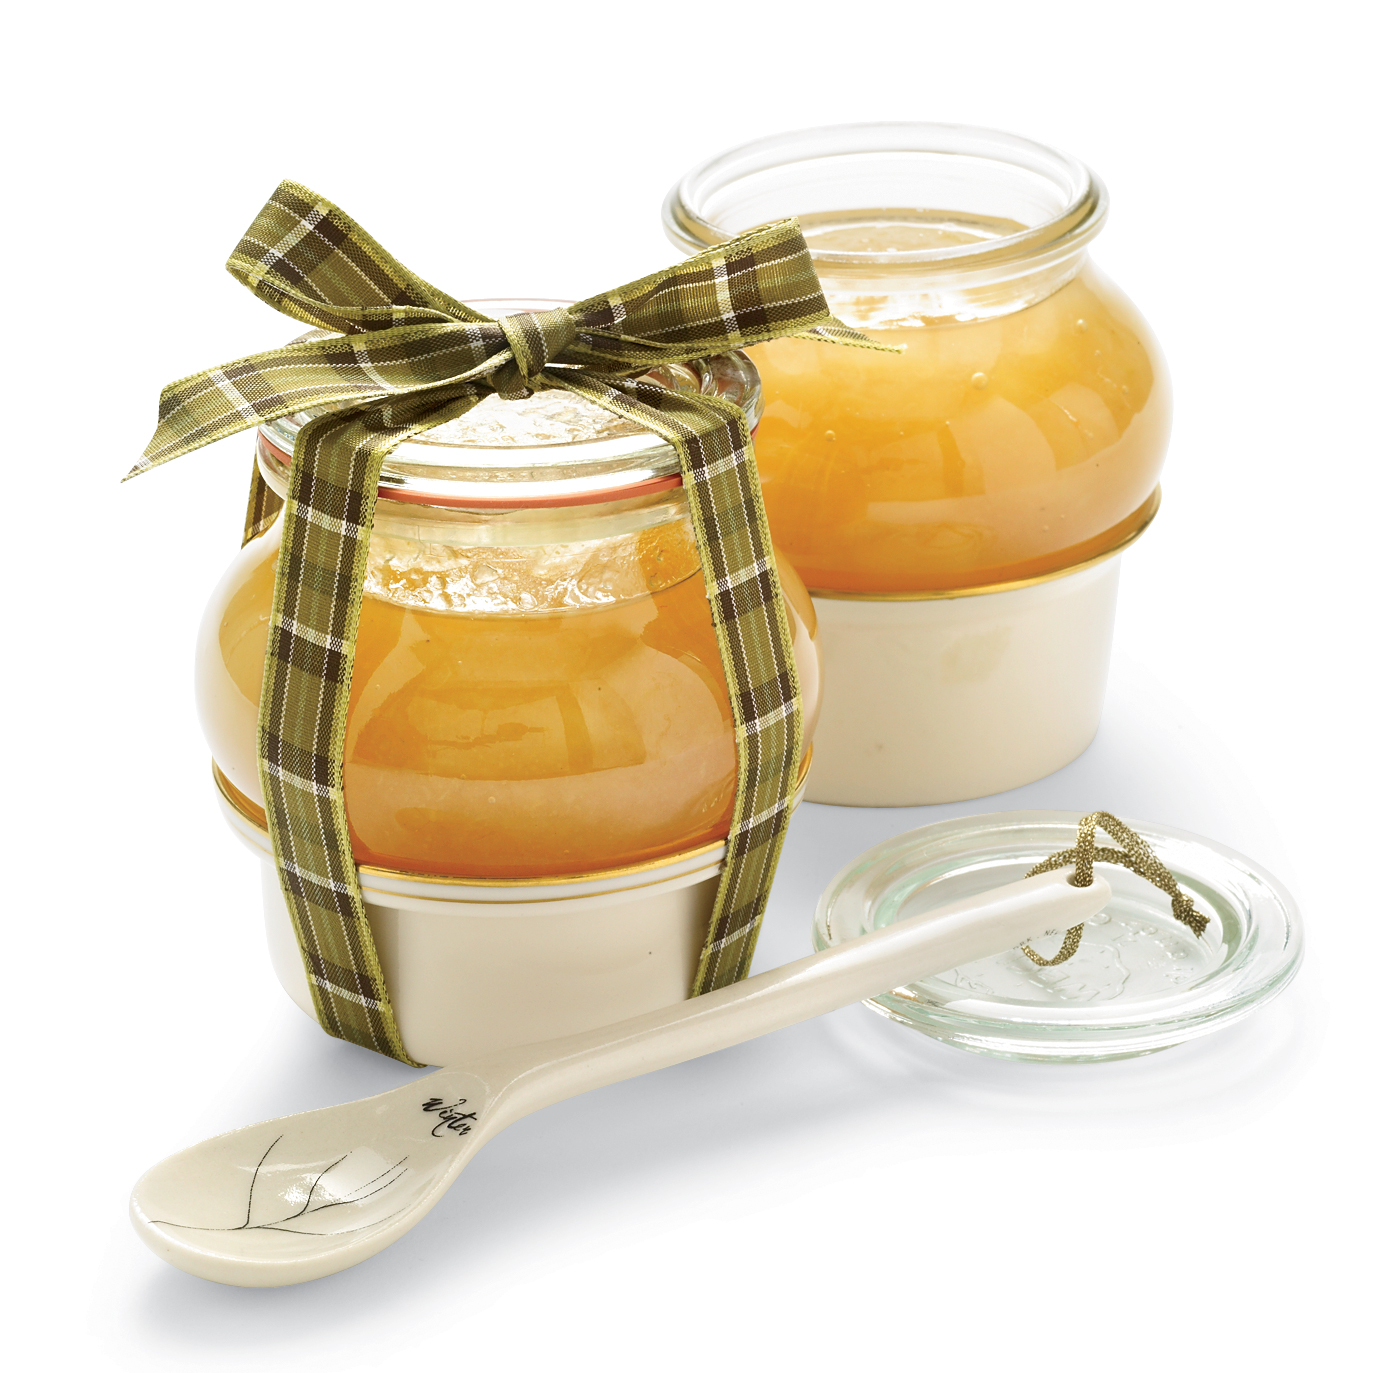 Pear Jam: Cooking Recipes 45